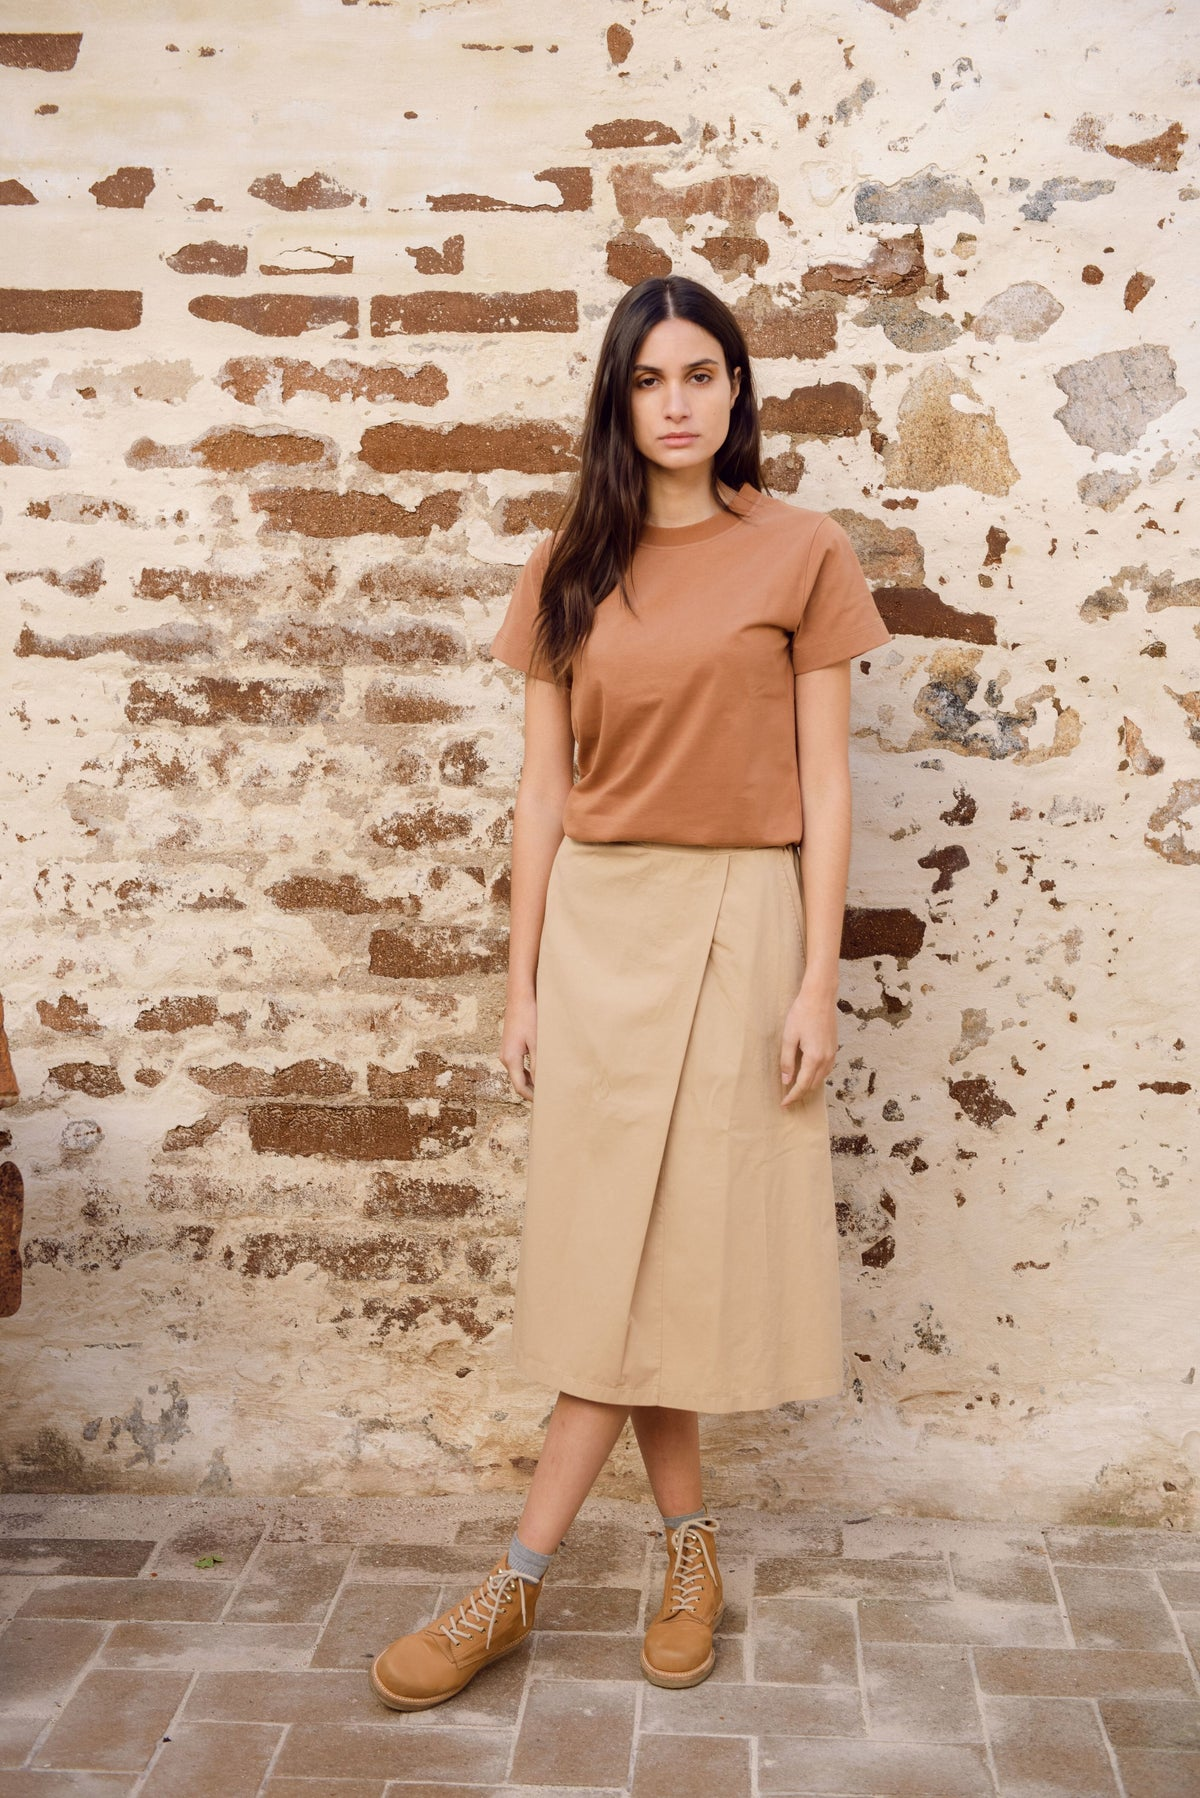 Beaumont Organic Maliah Top in Tan with a casual T-shirt style made of 100% organic cotton jersey